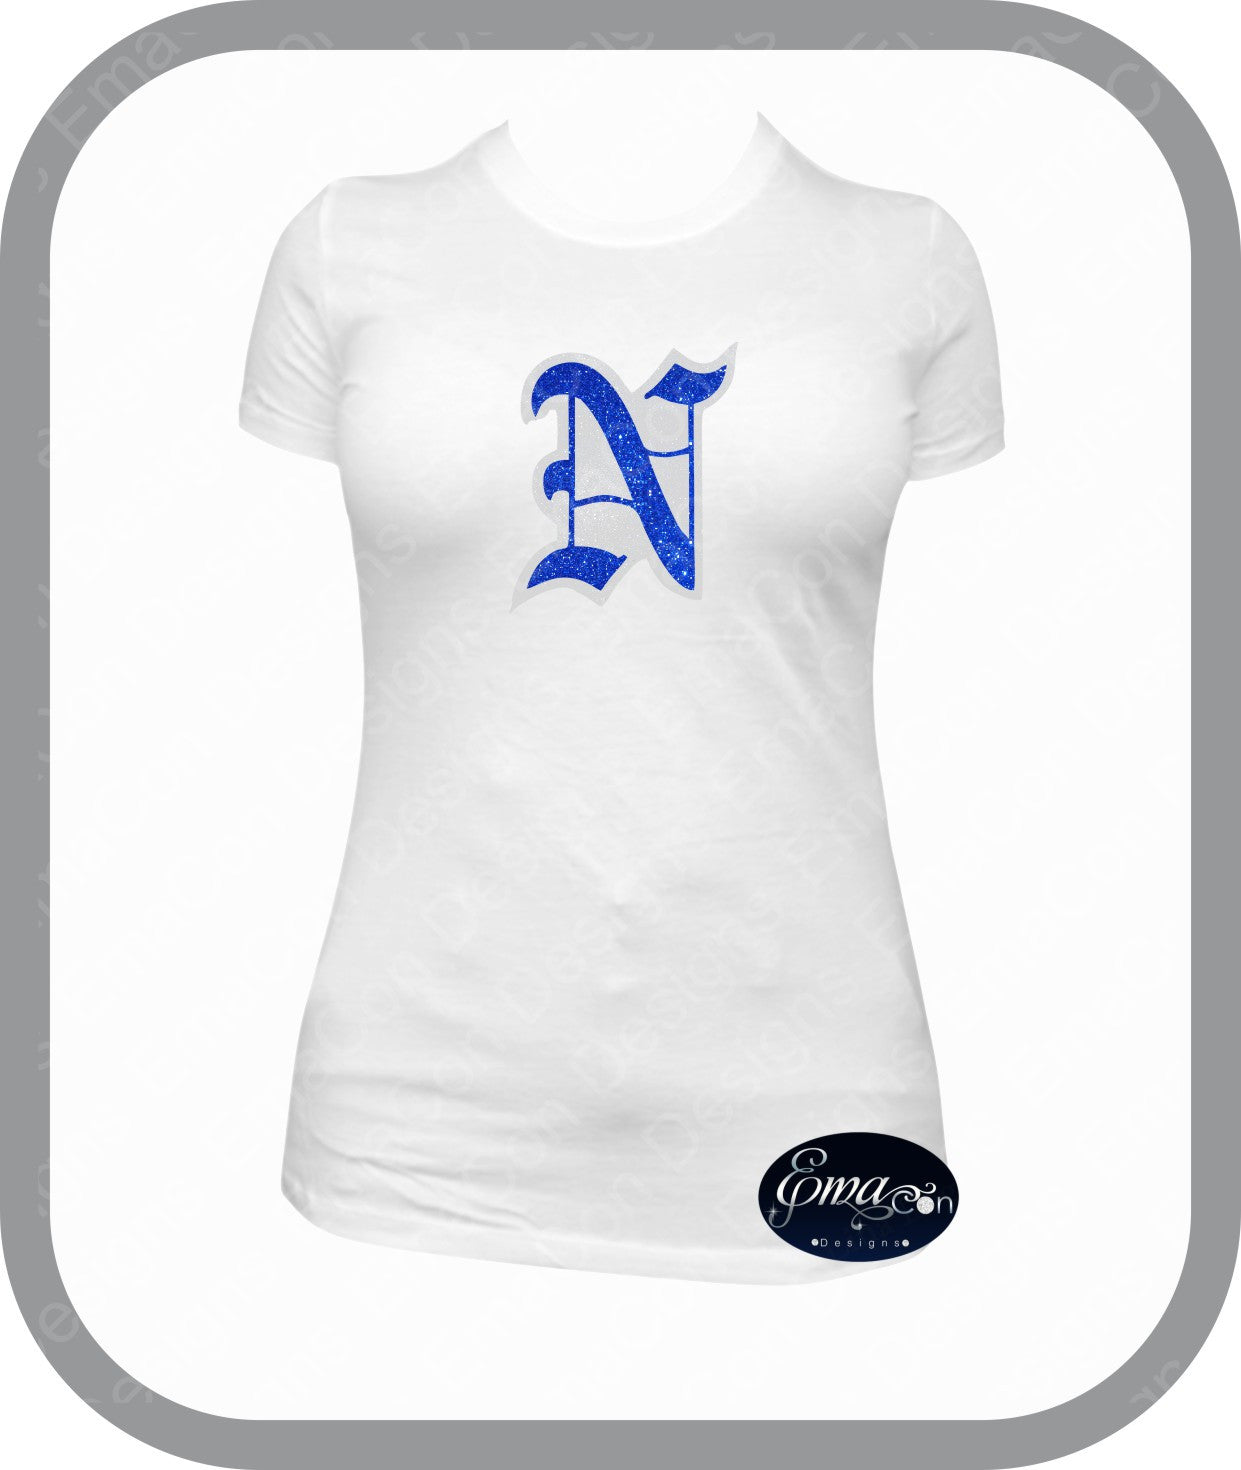 CR Newtown - Ladies T-Shirt